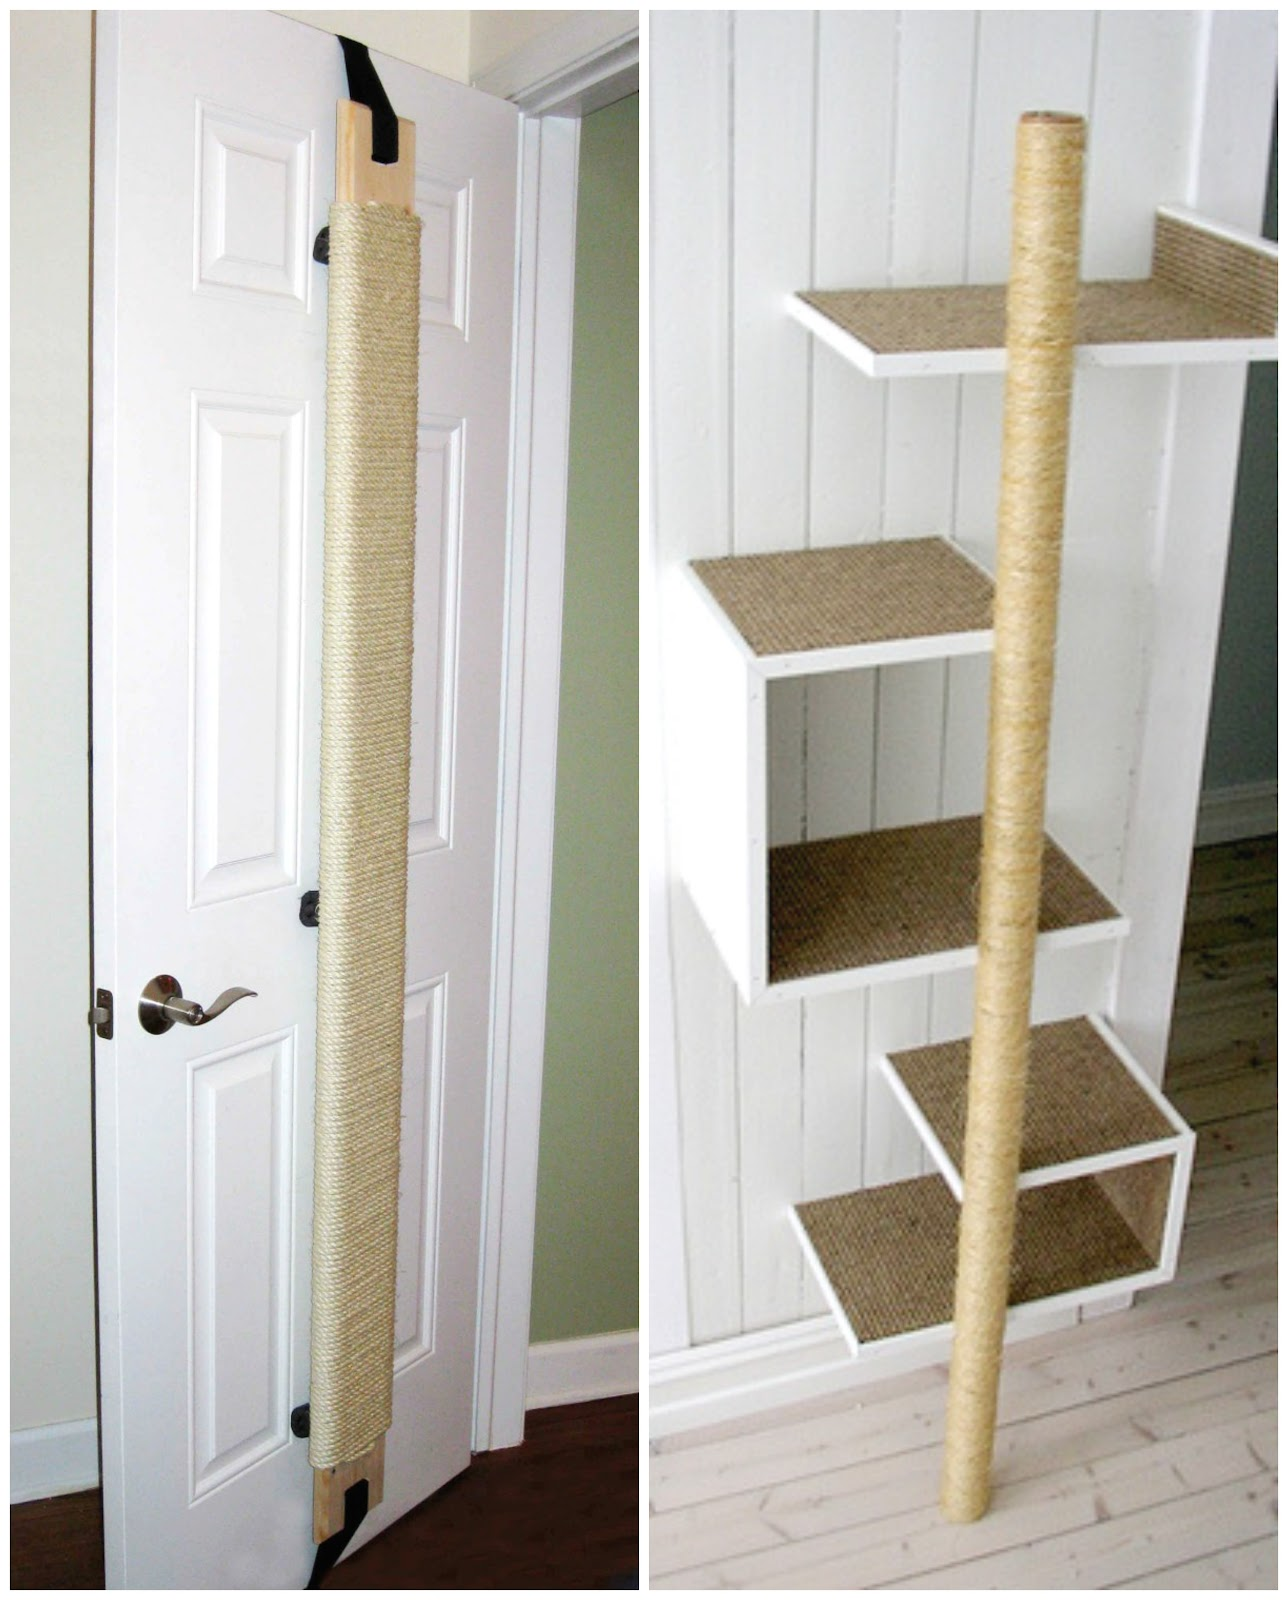 how to build a scratching post for cats blog tools4pro. Black Bedroom Furniture Sets. Home Design Ideas